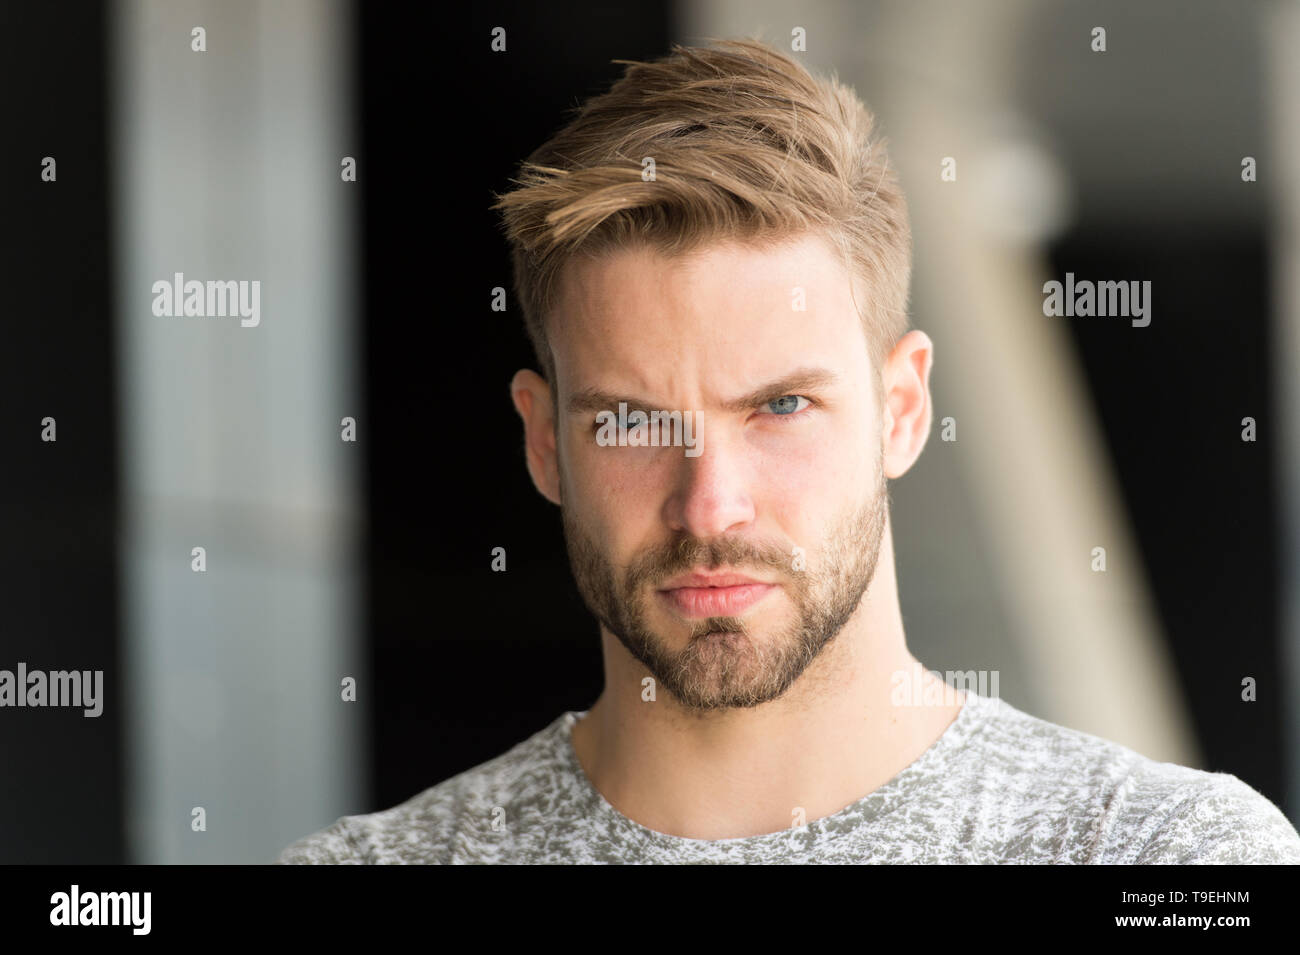 Metrosexual concept. Man beard unshaven guy looks handsome and cool. Handsome in style. Guy bearded attractive cares about appearance. Man bristle ser - Stock Image